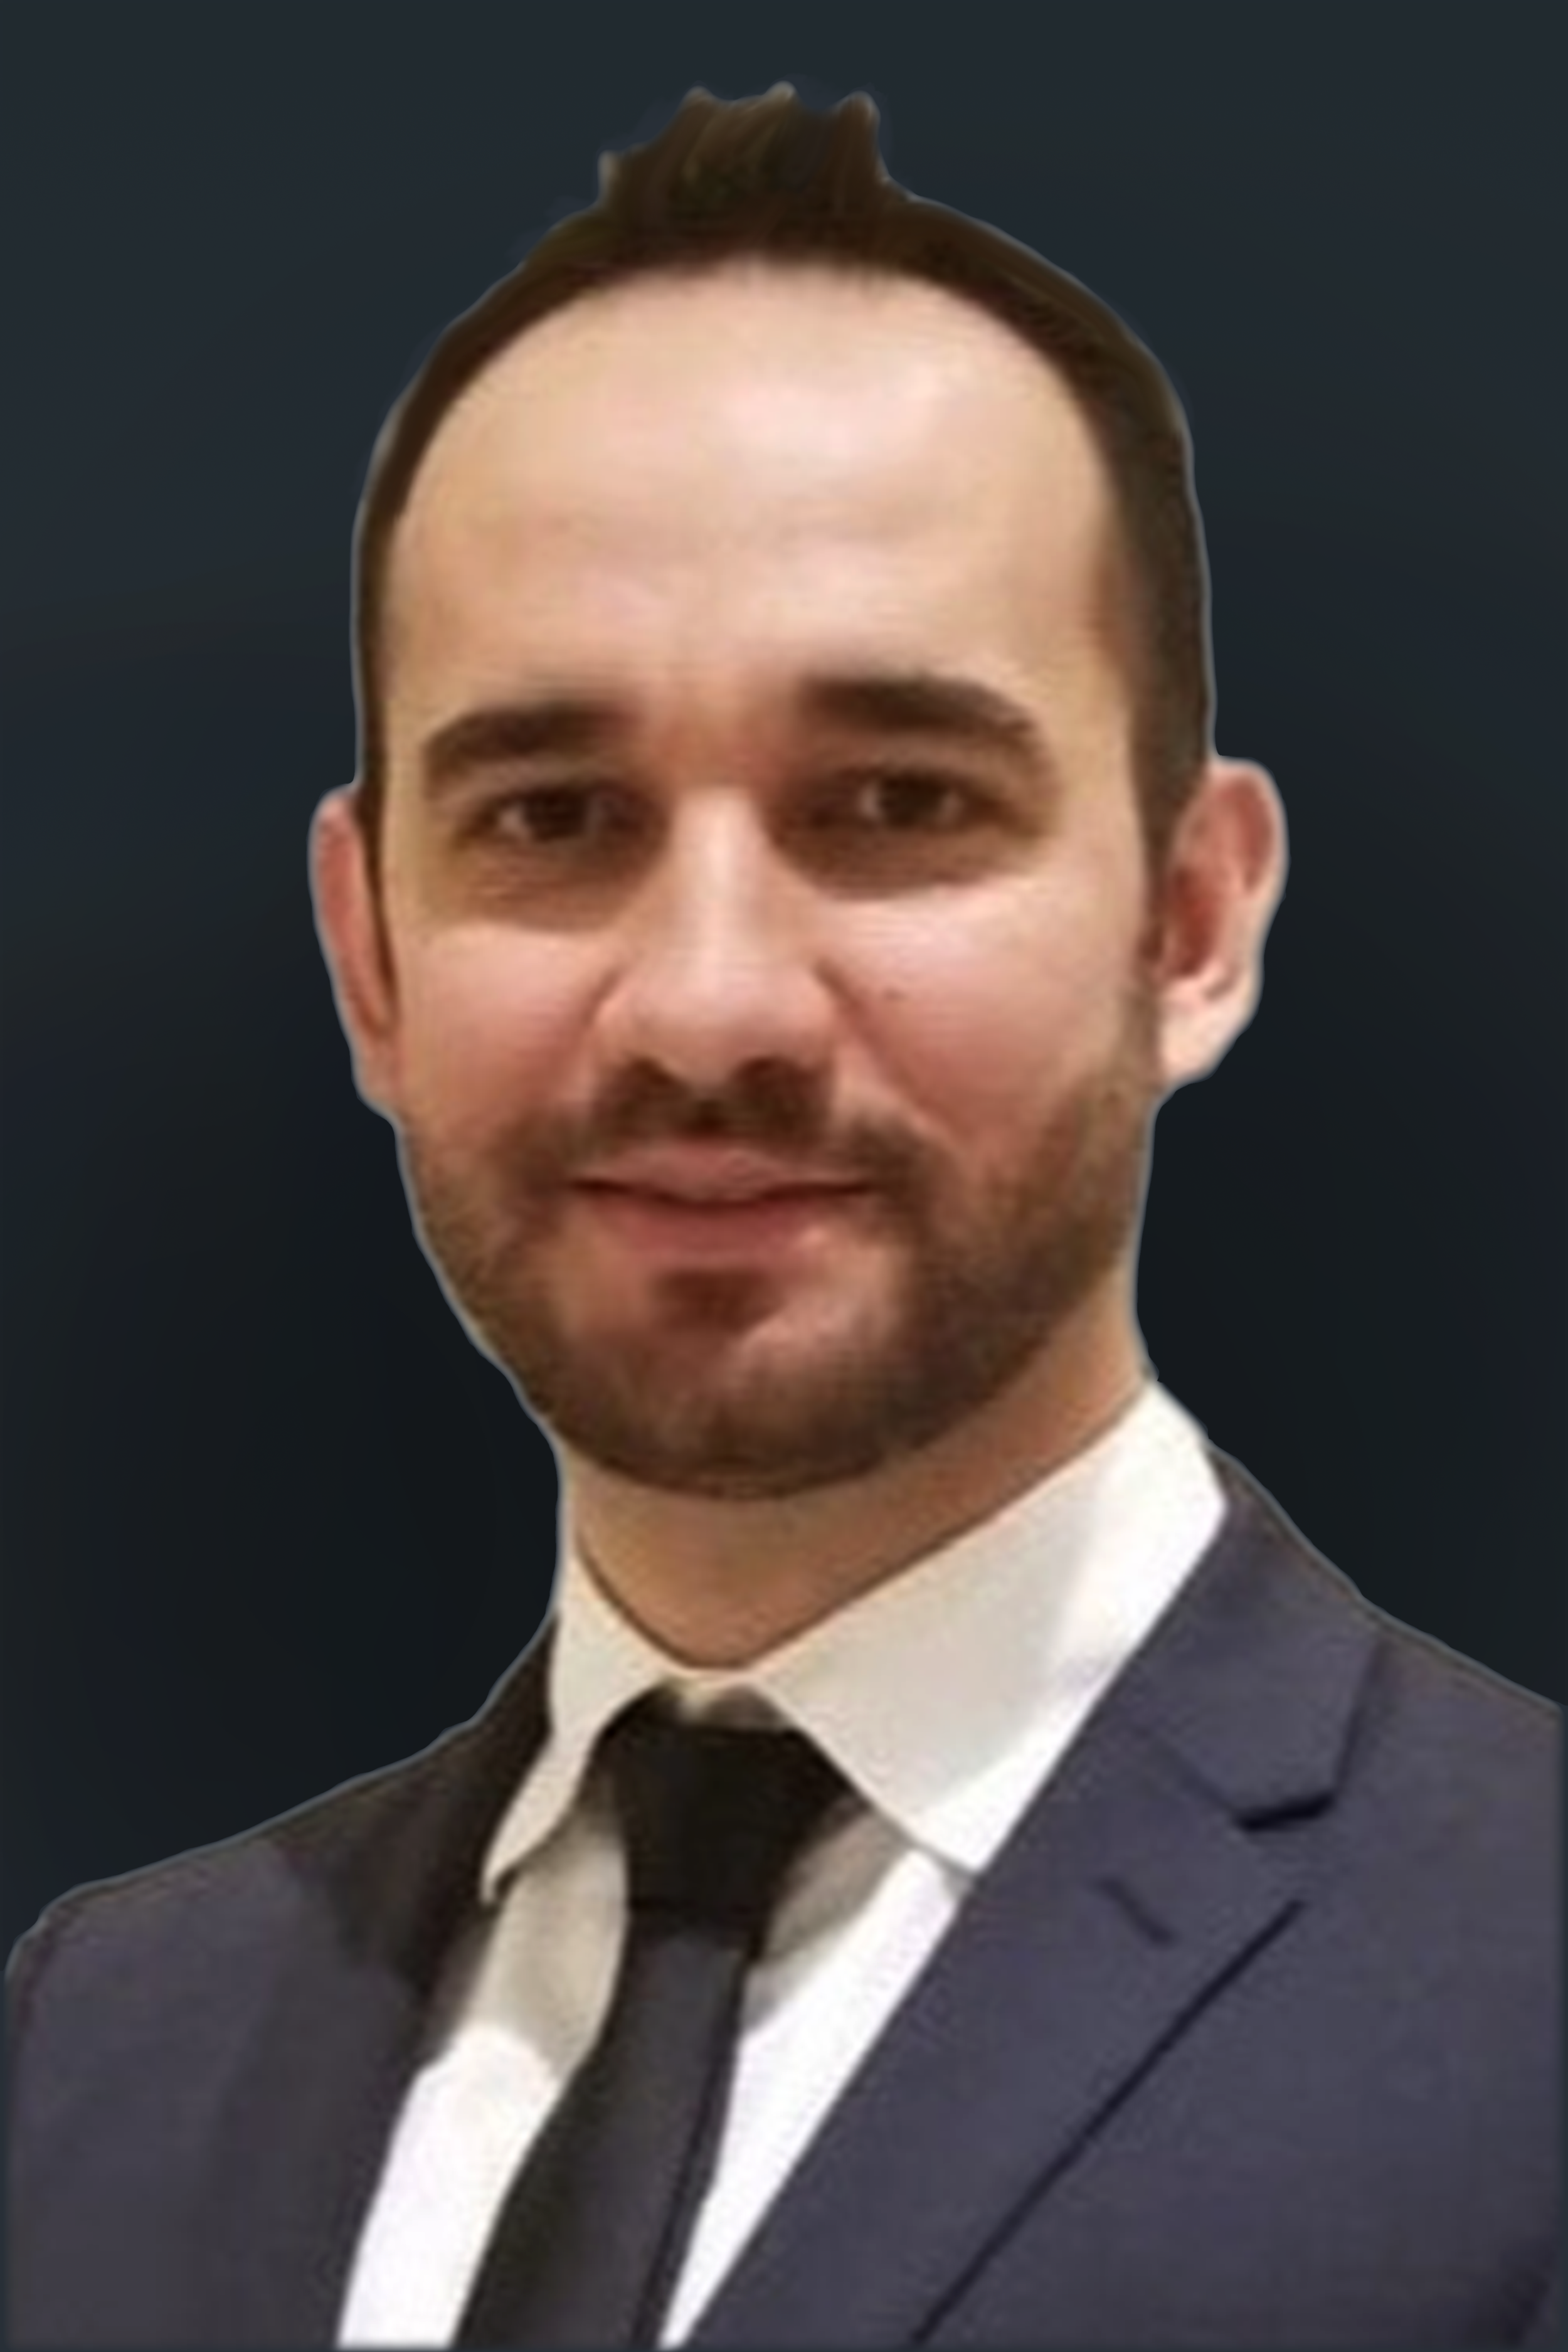 Mohamed Kamel, DMD-Clinical Studies Lead - A general dentist and biomedical engineer with experience in biomaterials and clinical applications of the dental membranes, bone grafting and implant dentistry.